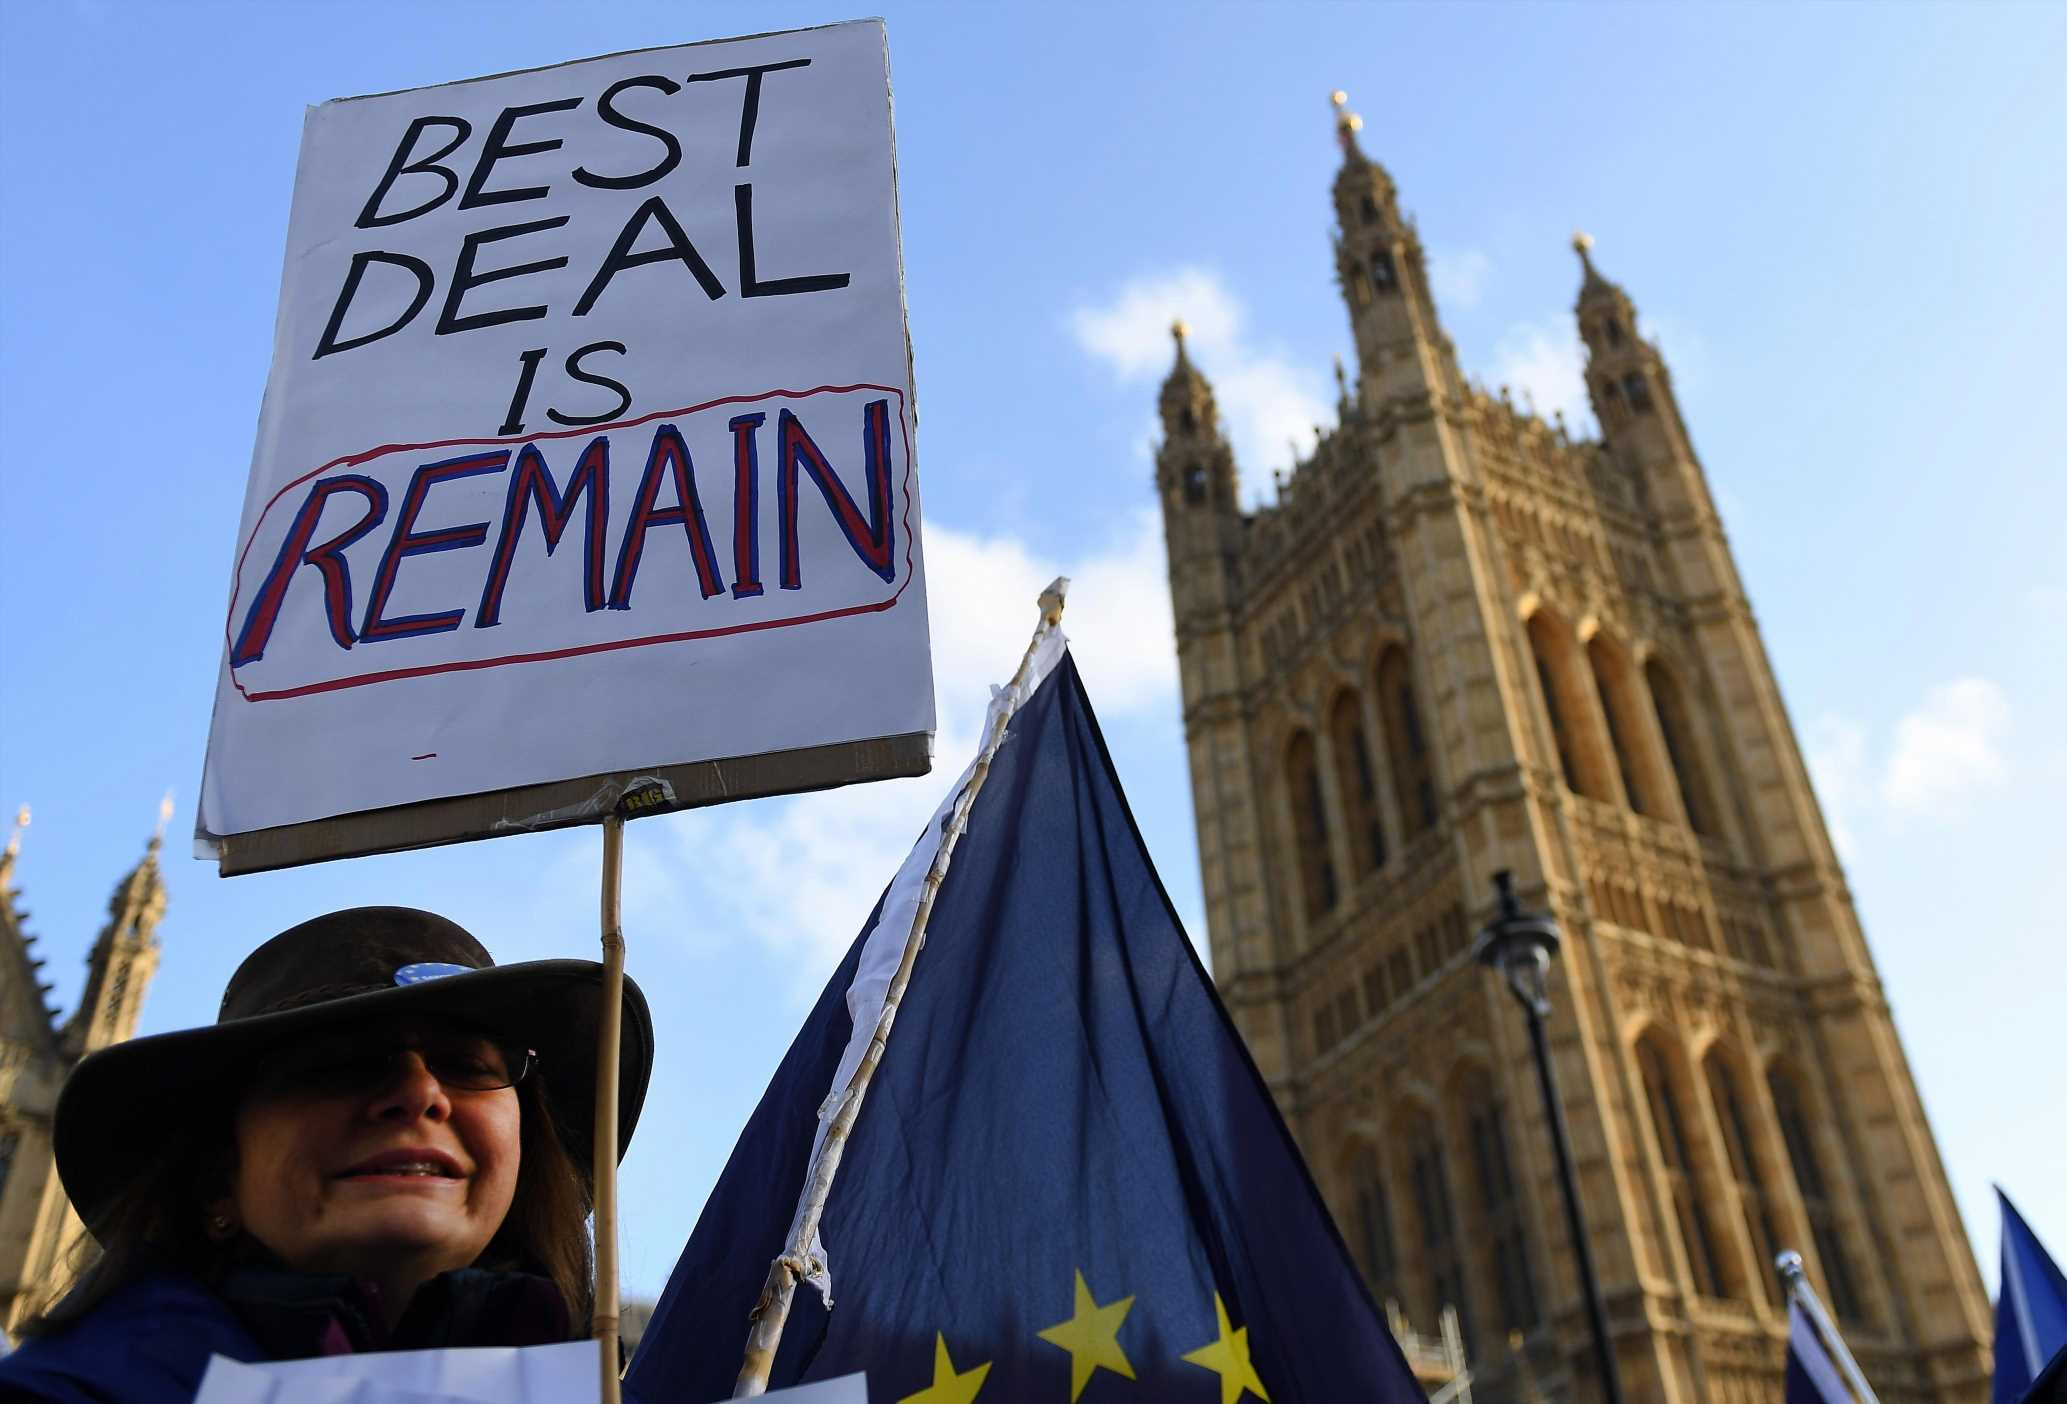 Theresa May is right to suppress the Remainers' demands for a 'People's Vote' as it betrays the Brexit result